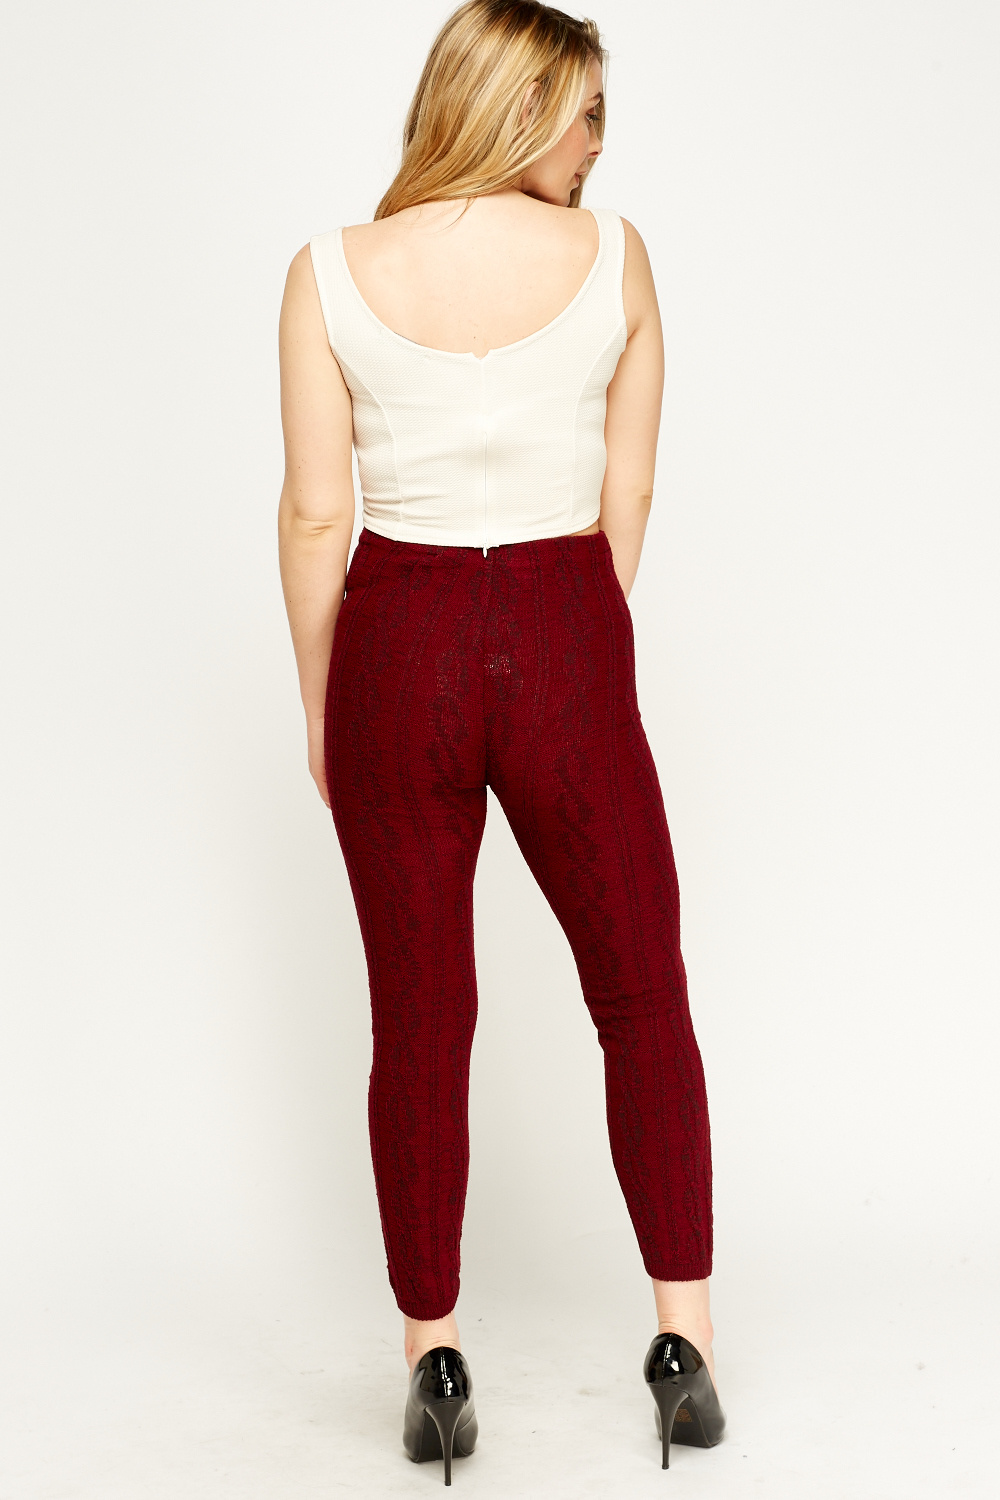 Cable Knit Leggings Just 163 5